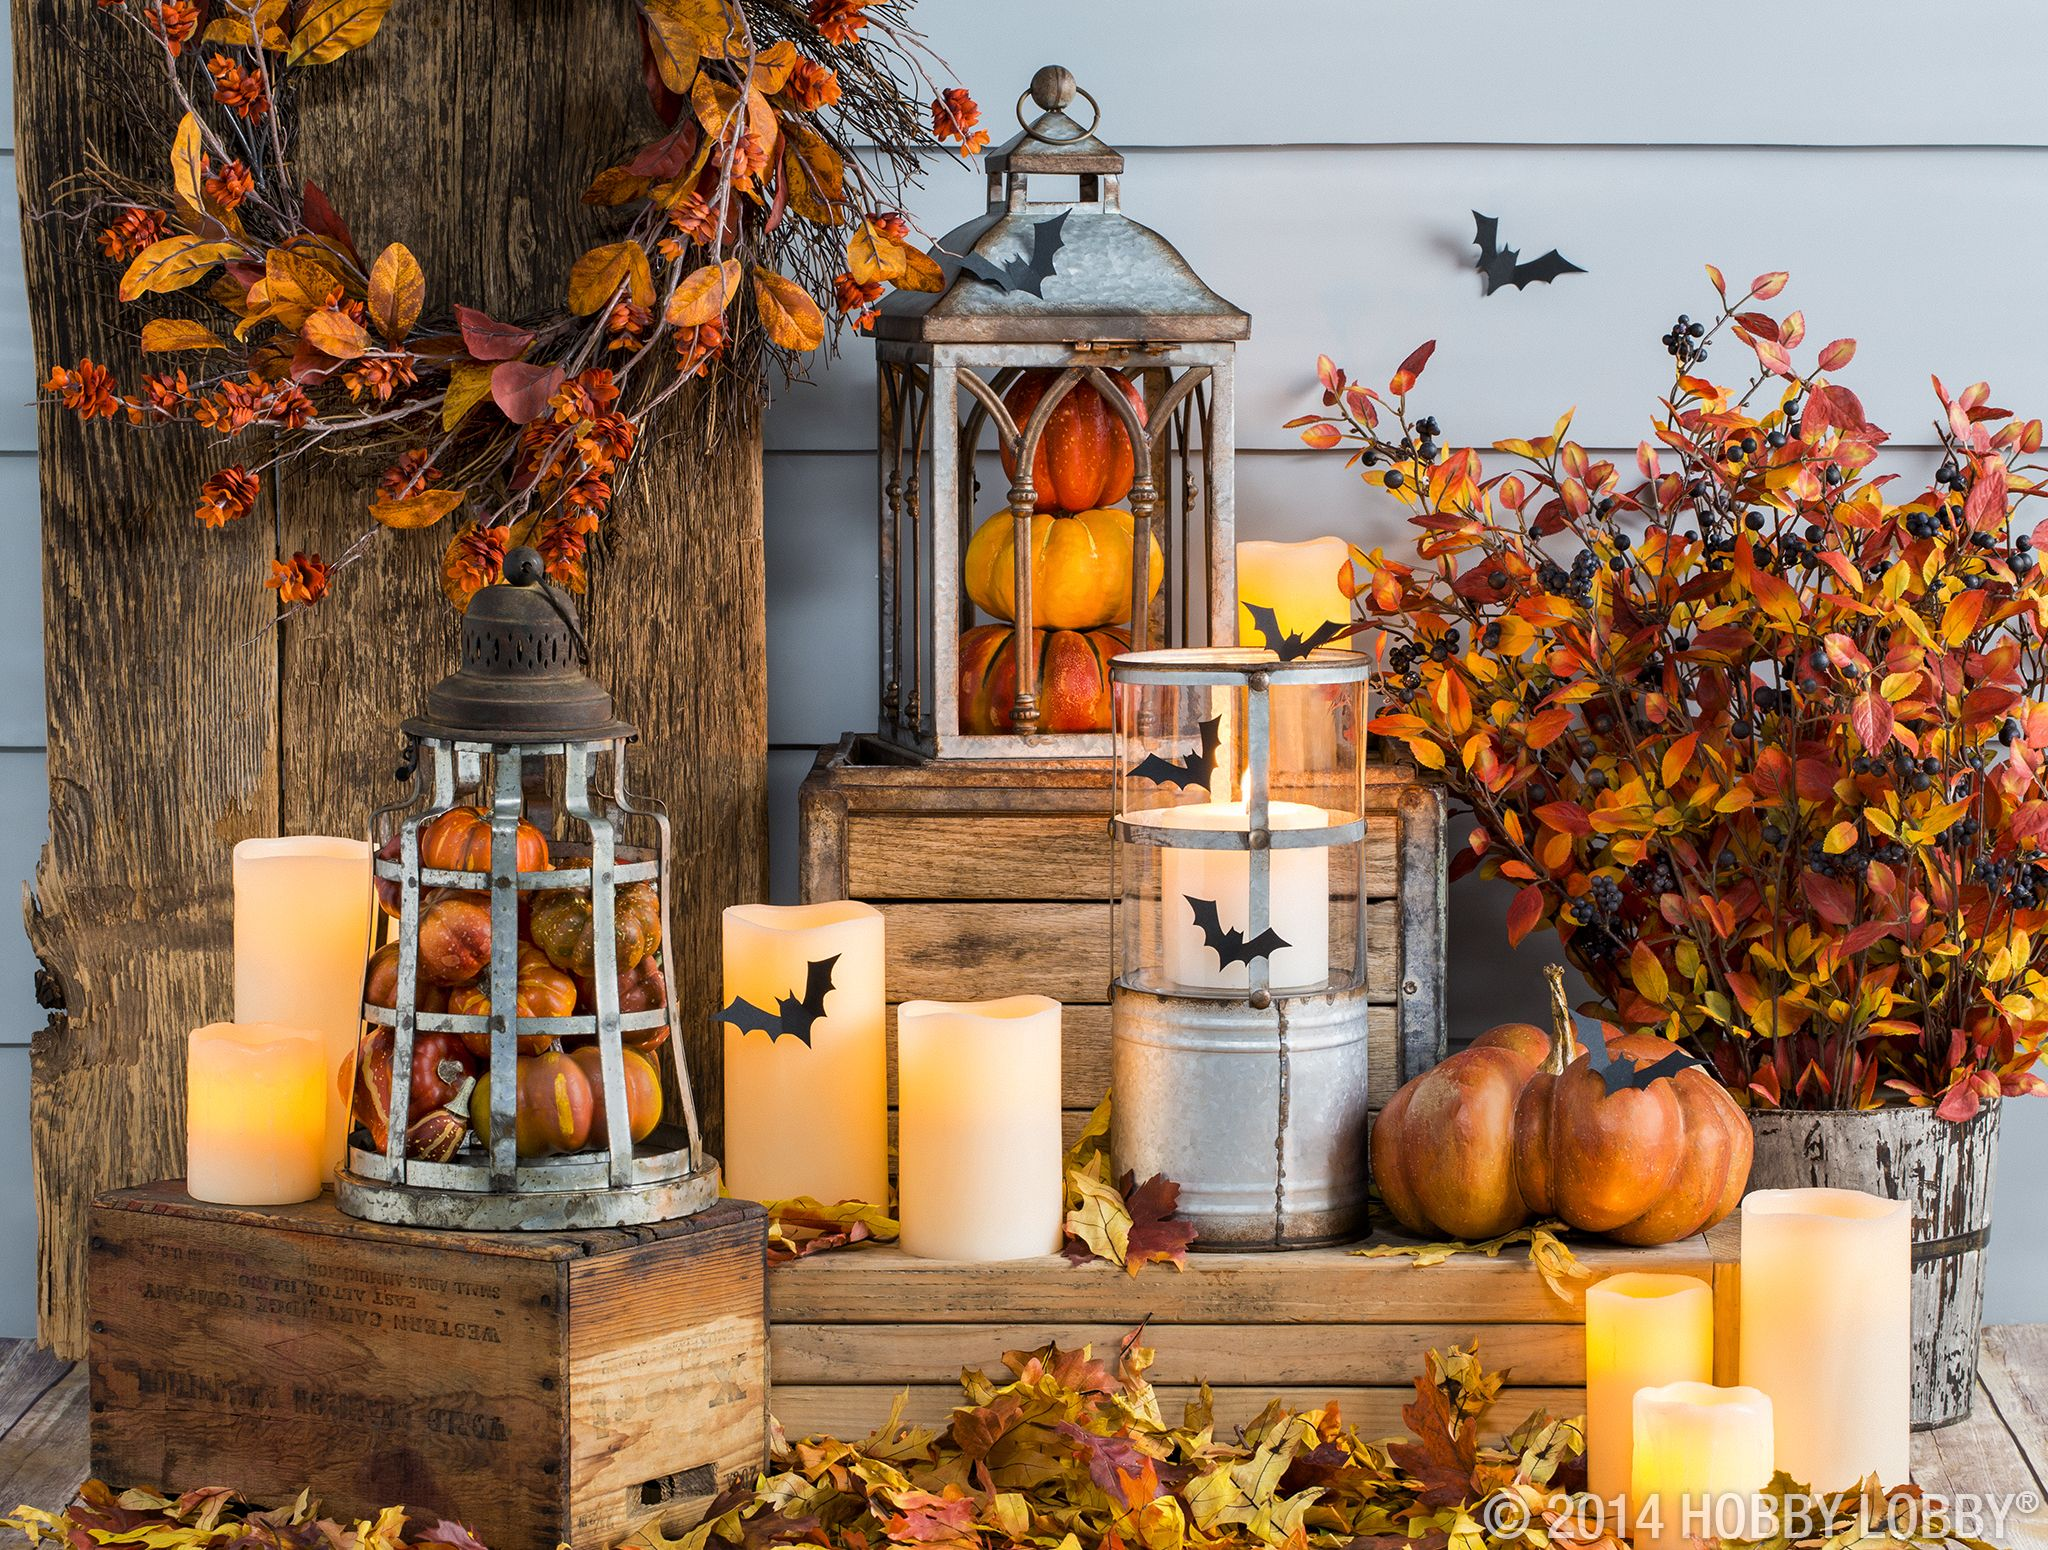 Lanterns light the way to a cozy front porch this autumn season - Hobby Lobby Halloween Decorations